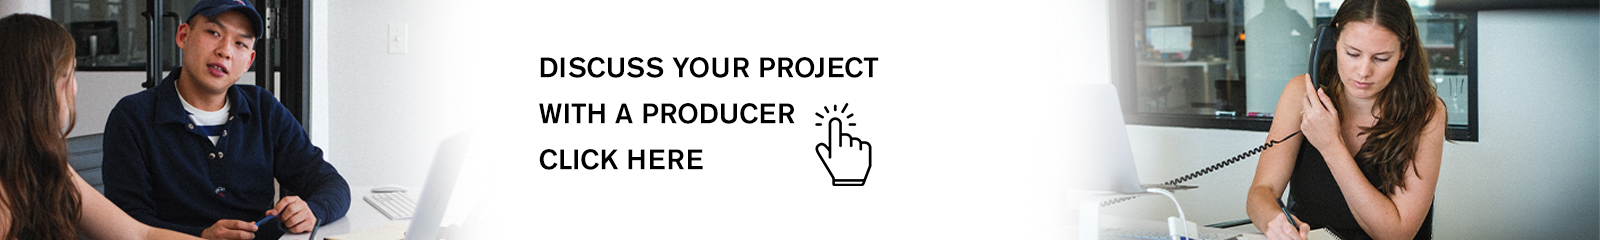 Discuss your project with a producer